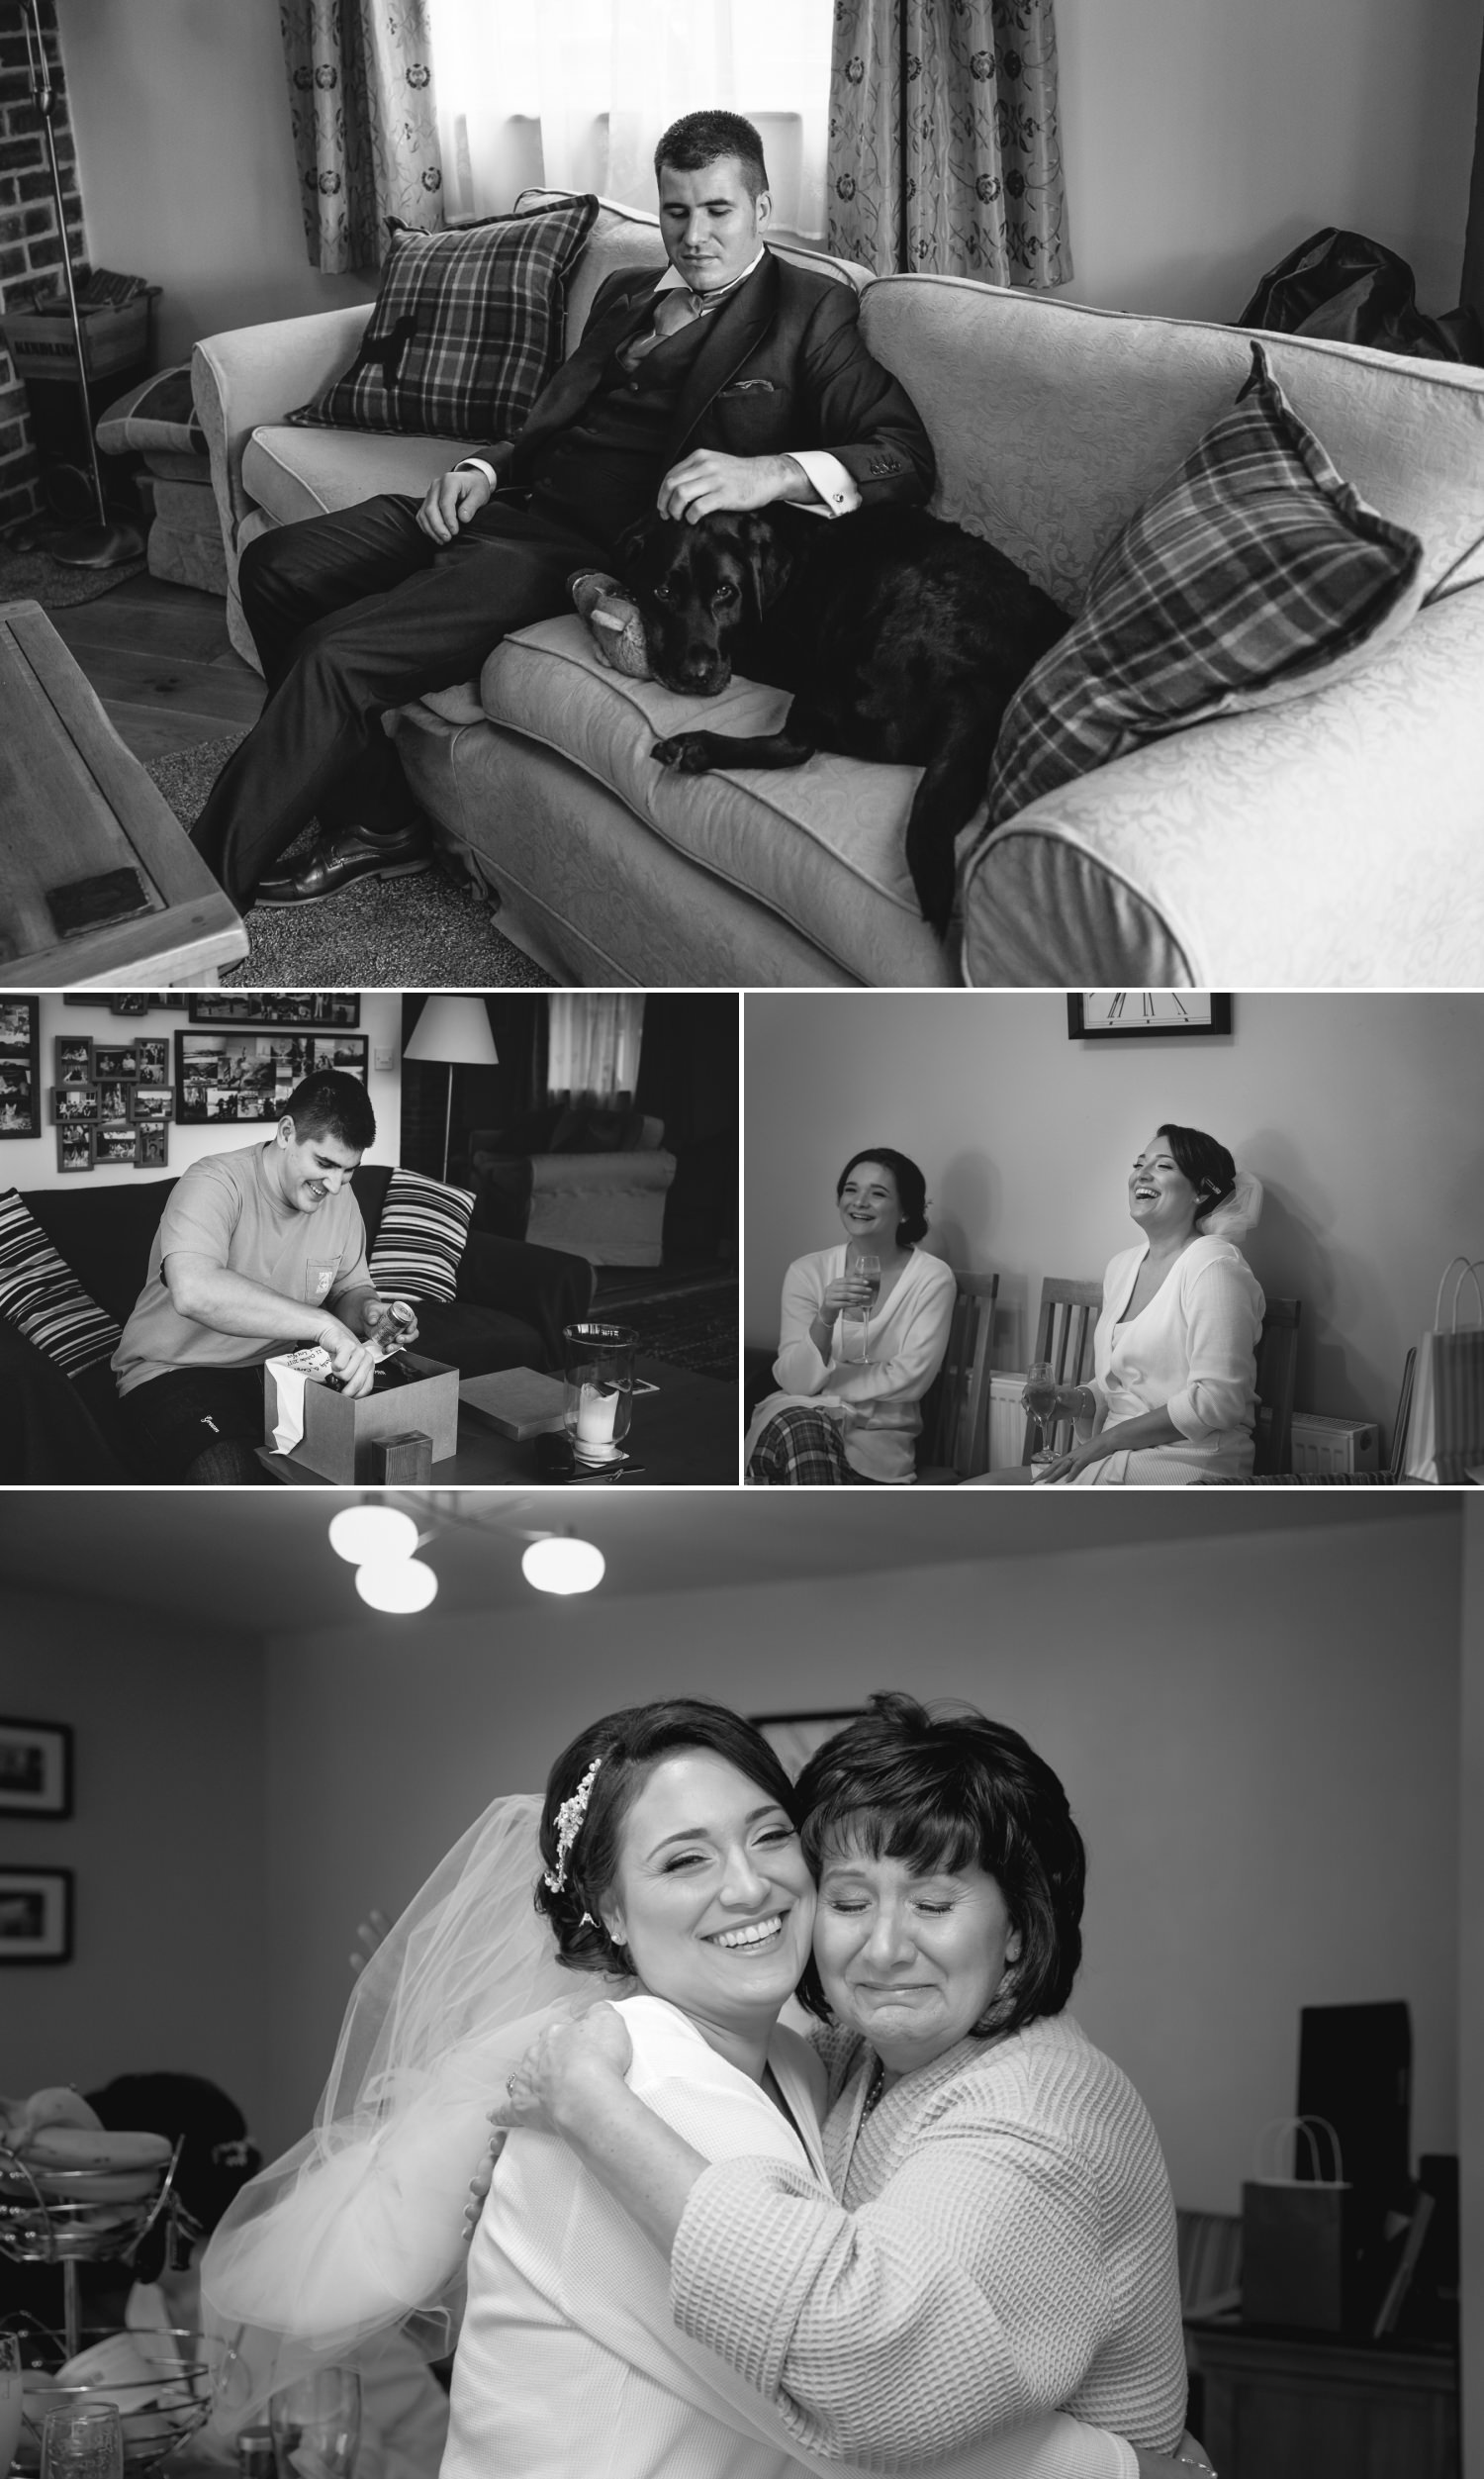 Photographs of the bride and groom getting ready